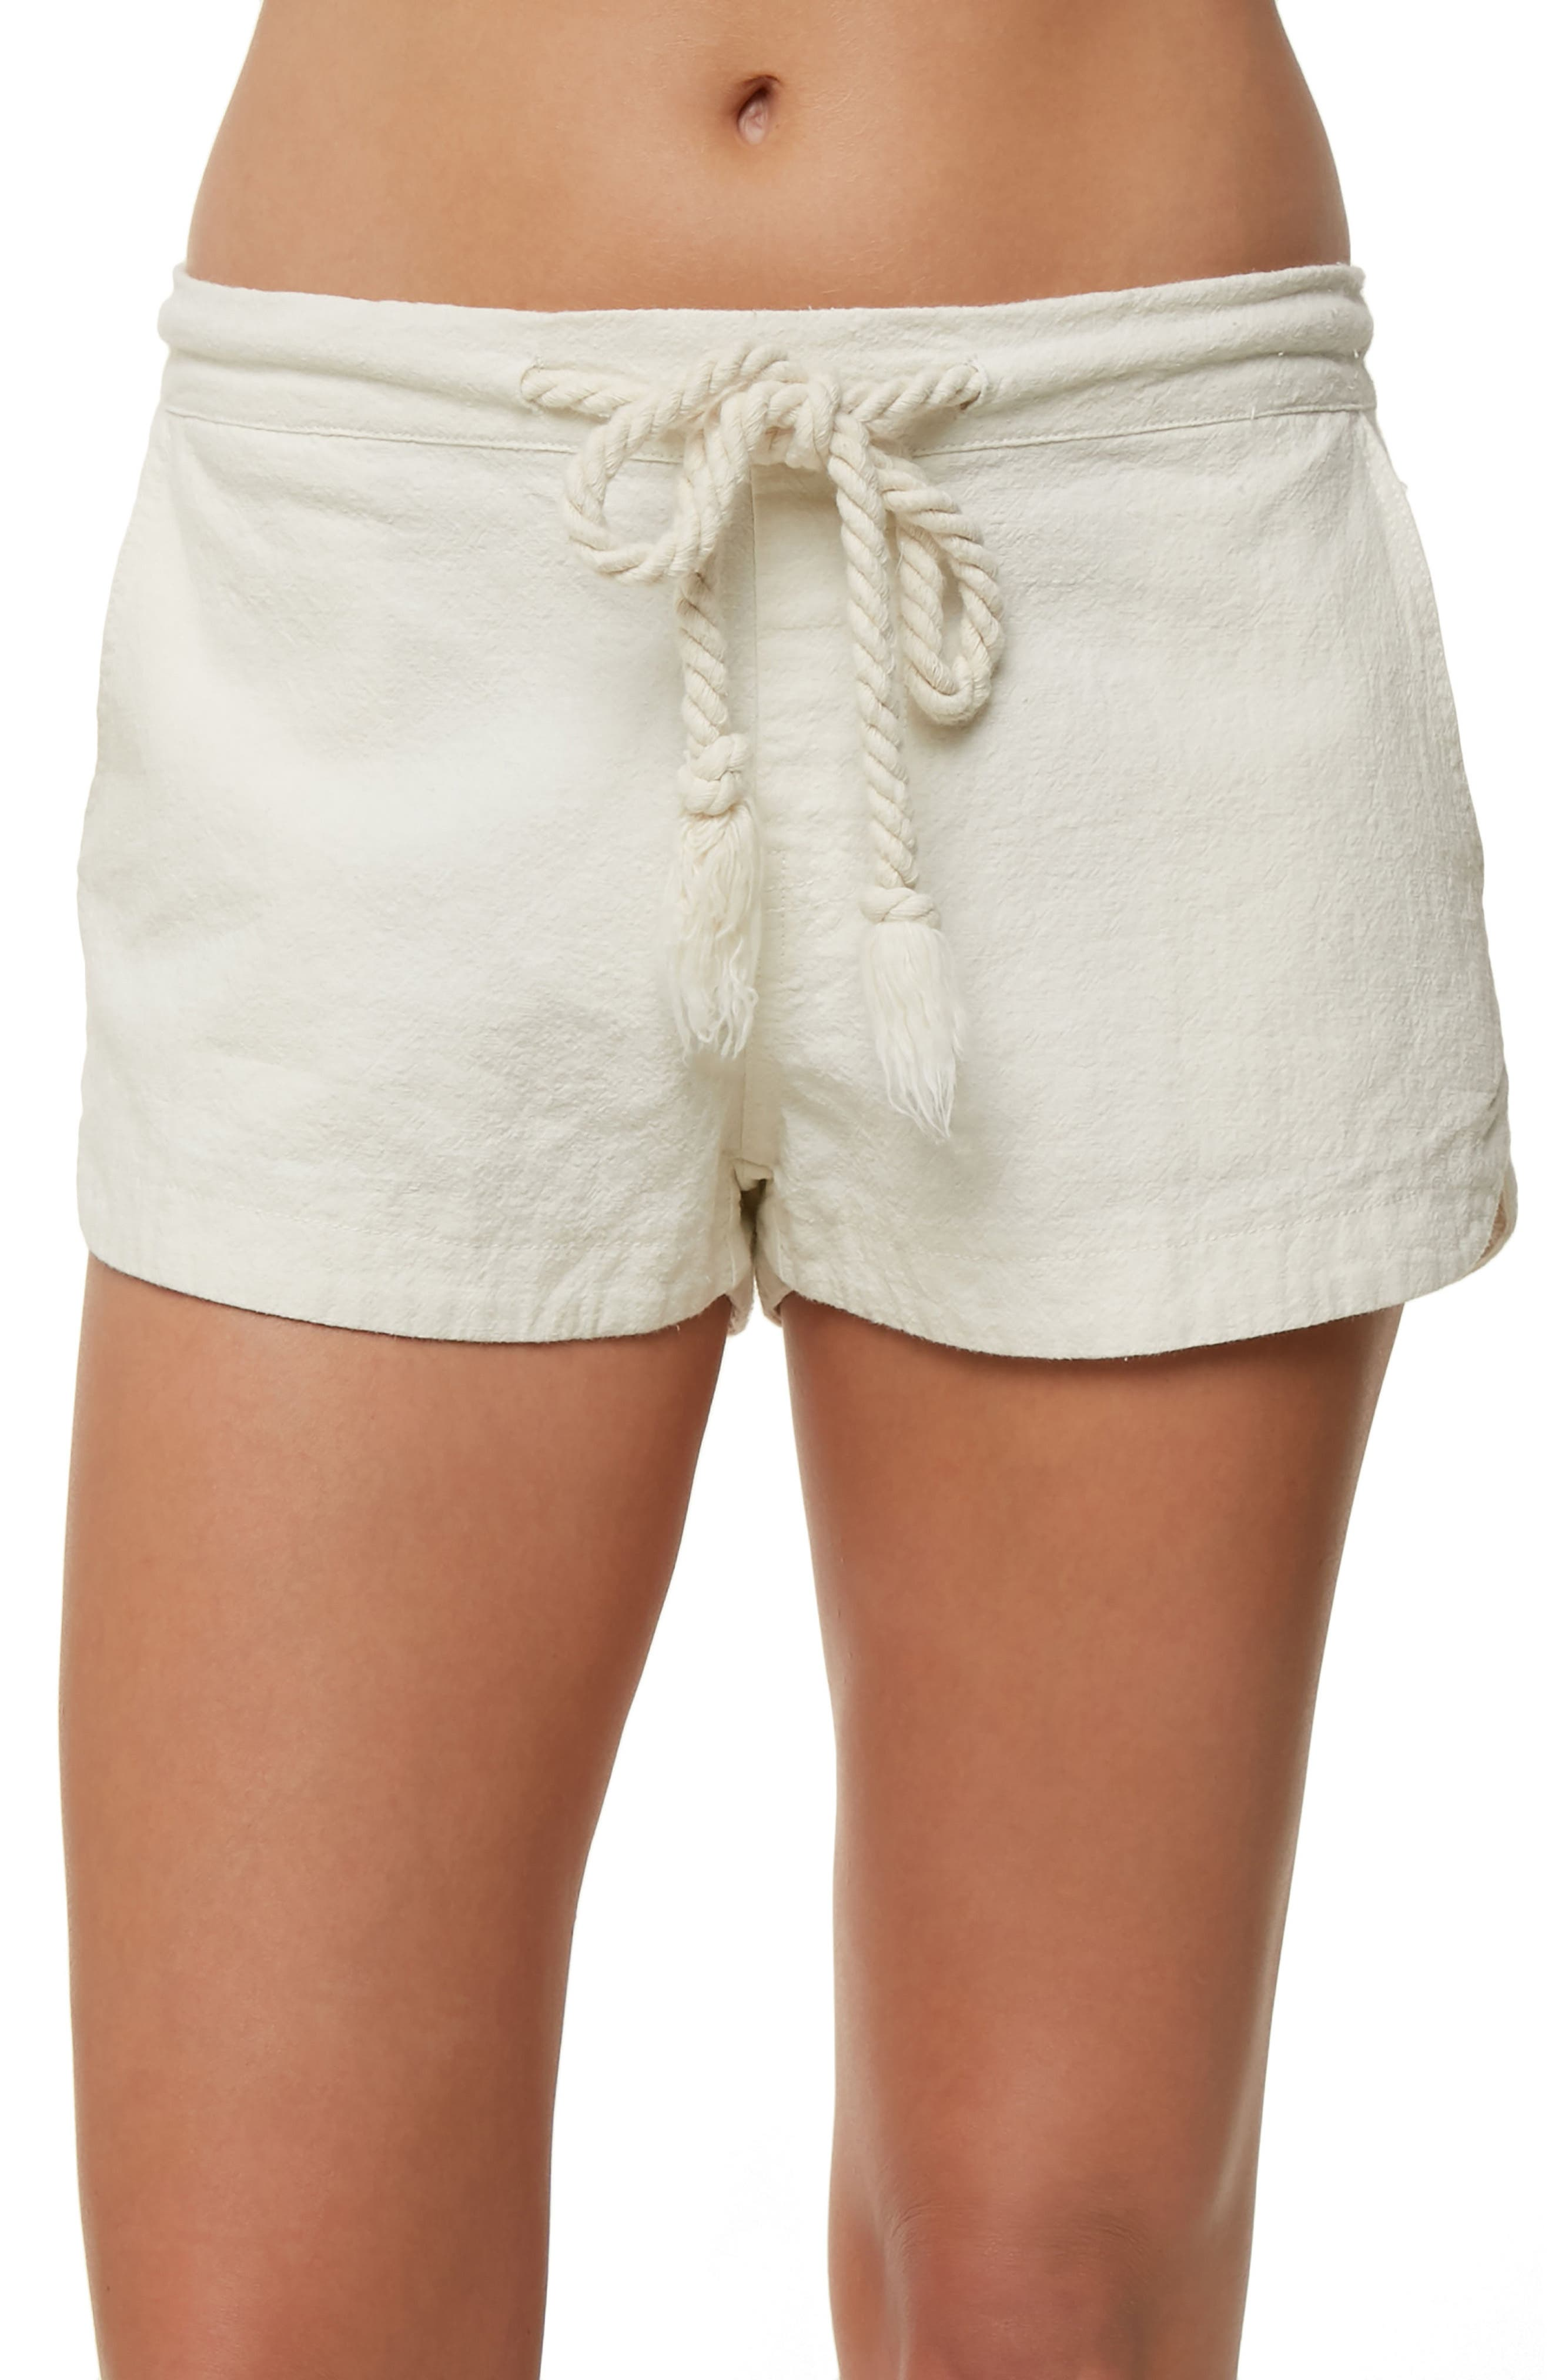 Krista Shorts,                         Main,                         color,